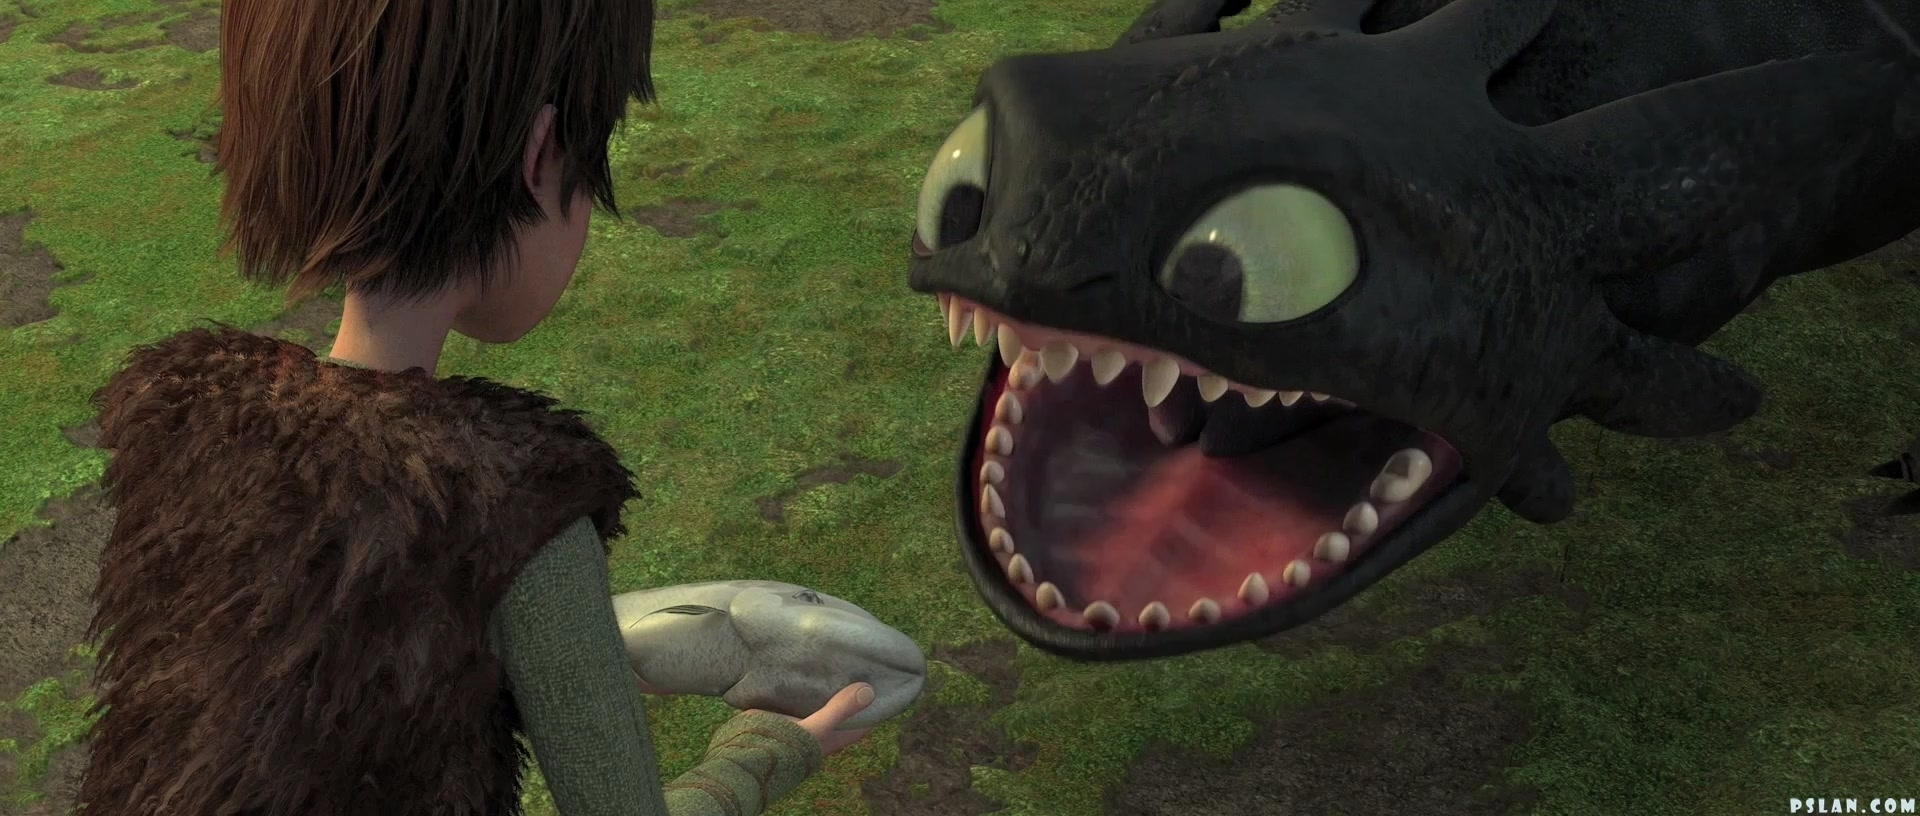 http://images2.fanpop.com/image/photos/9600000/Hiccup-Toothless-how-to-train-your-dragon-9626254-1920-816.jpg